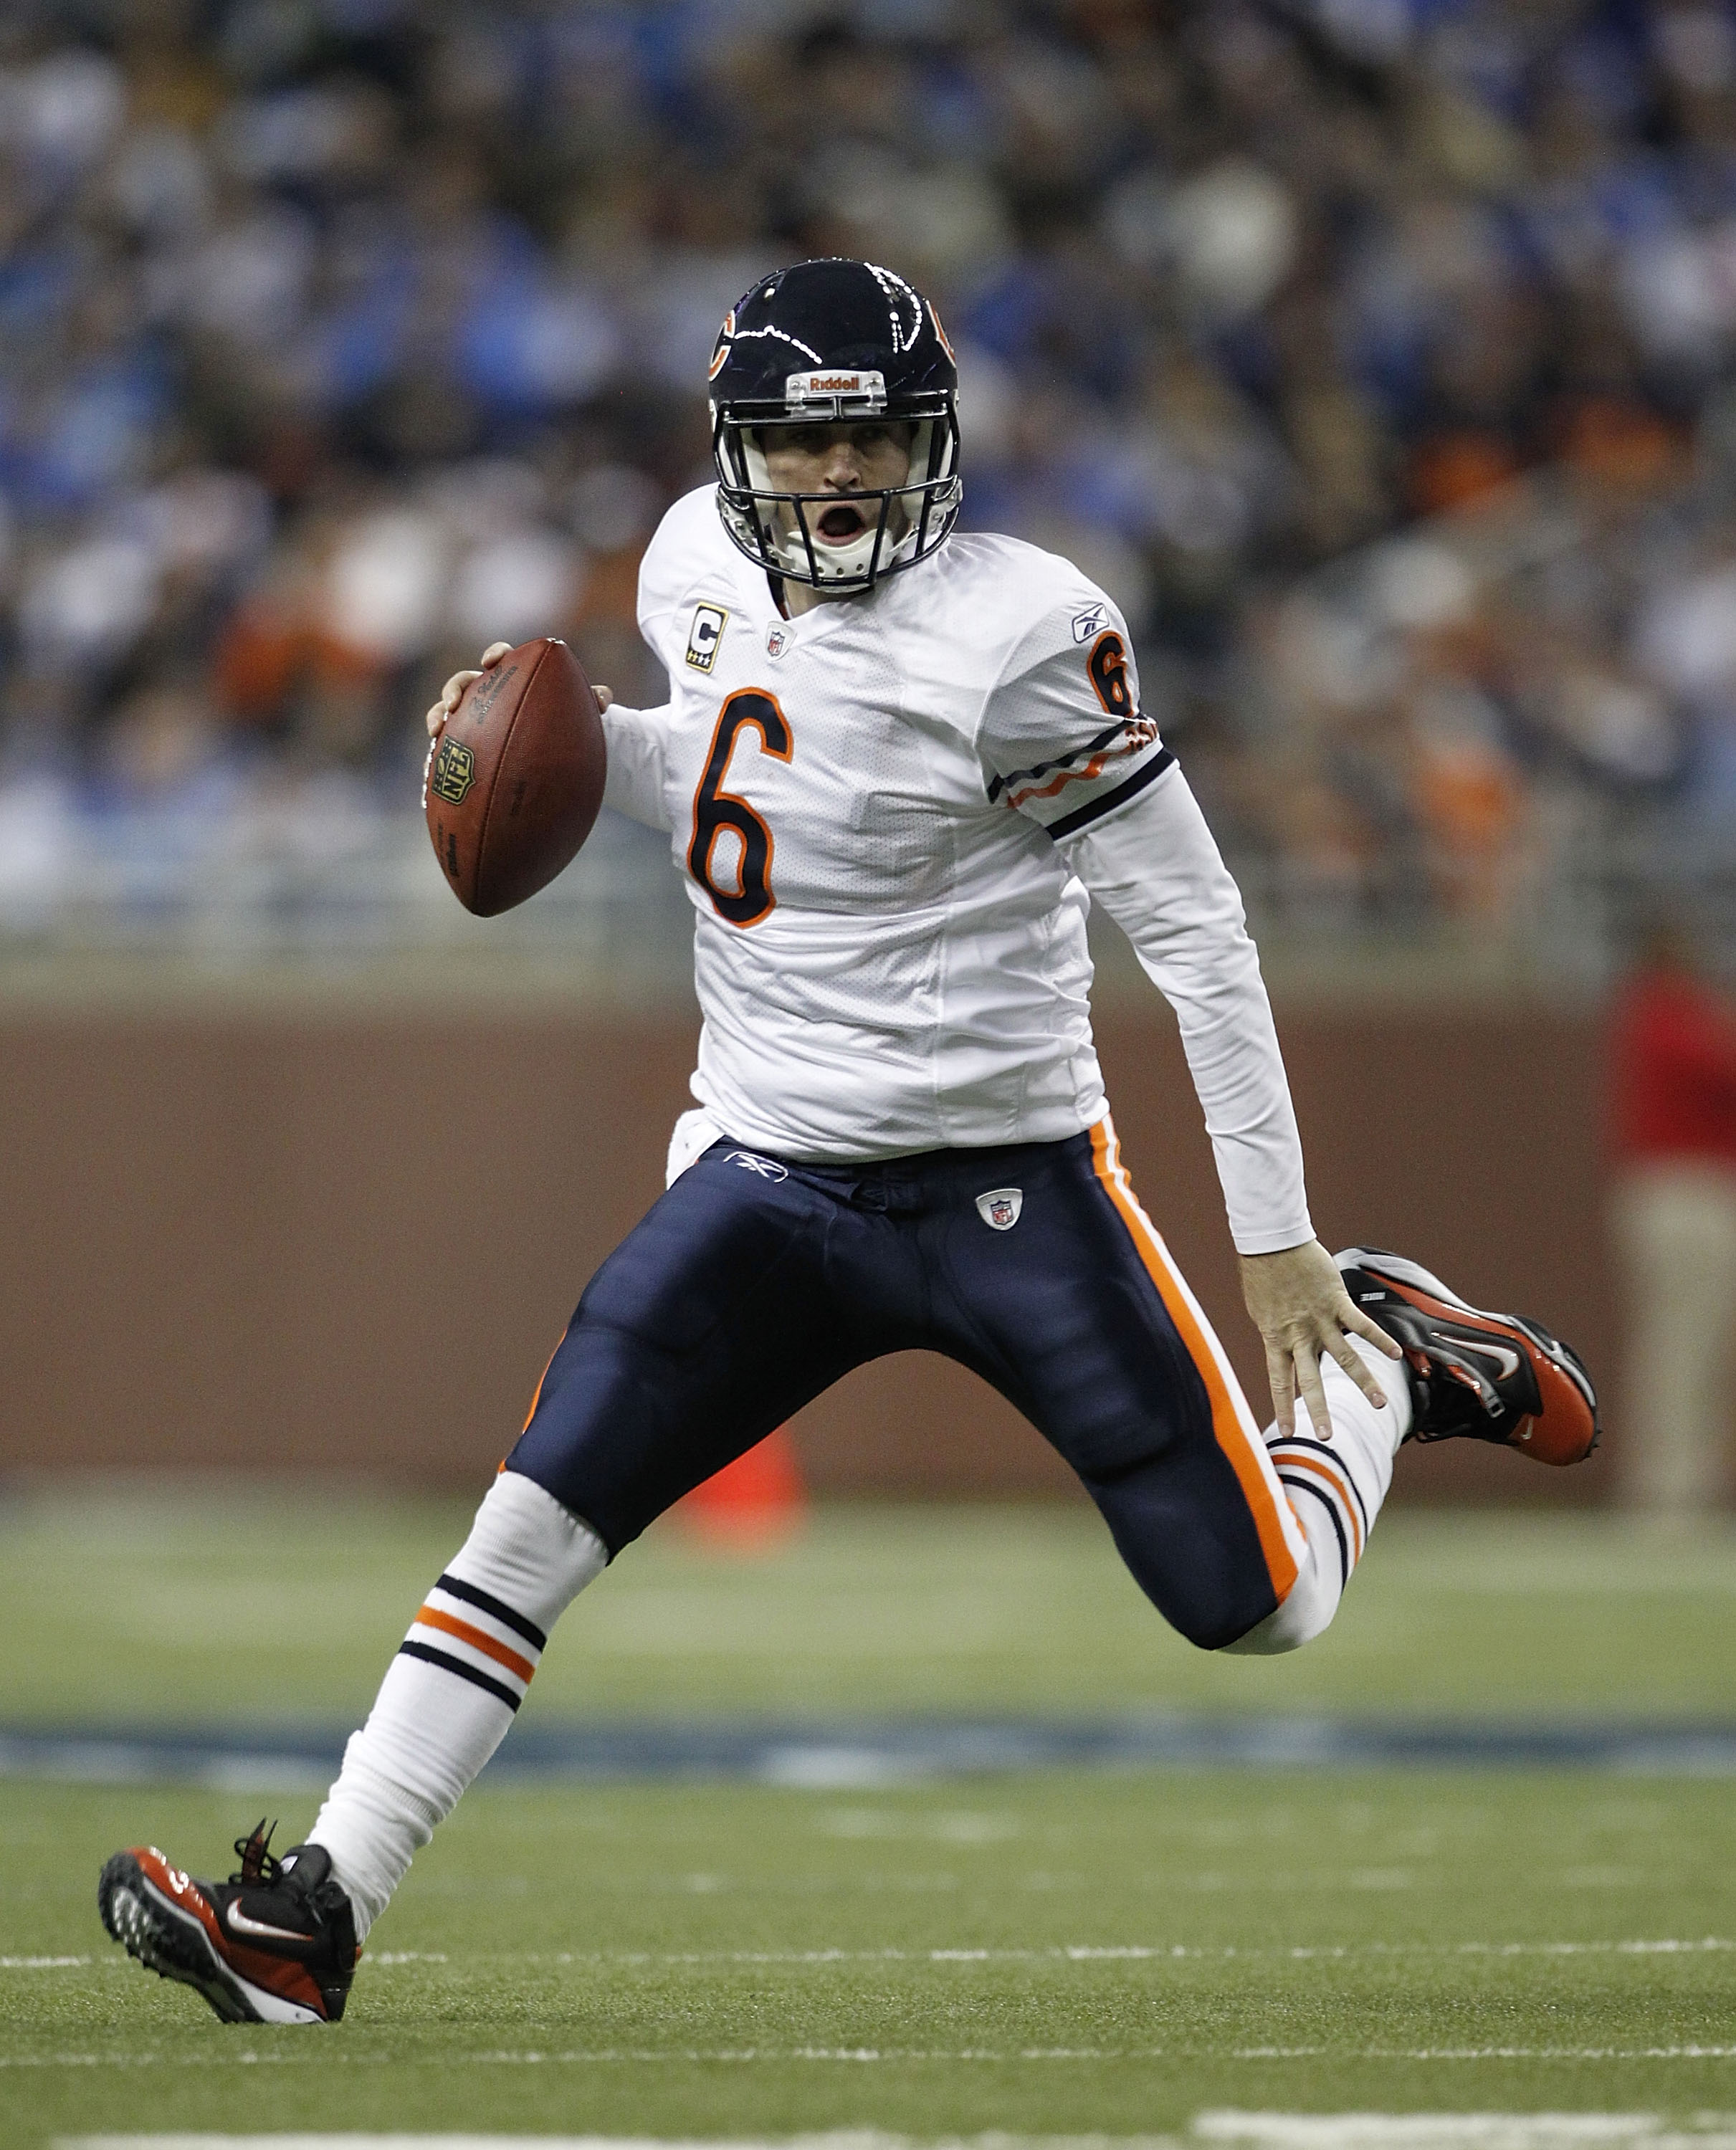 DETROIT - DECEMBER 05: Jay Cutler #6 of the Chicago Bears scrambles for a first down during the fourth quarter of the game against the Detroit Lions at Ford Field on December 5, 2010 in Detroit, Michigan. The Bears defeated the Lions 24-20.  (Photo by Leo